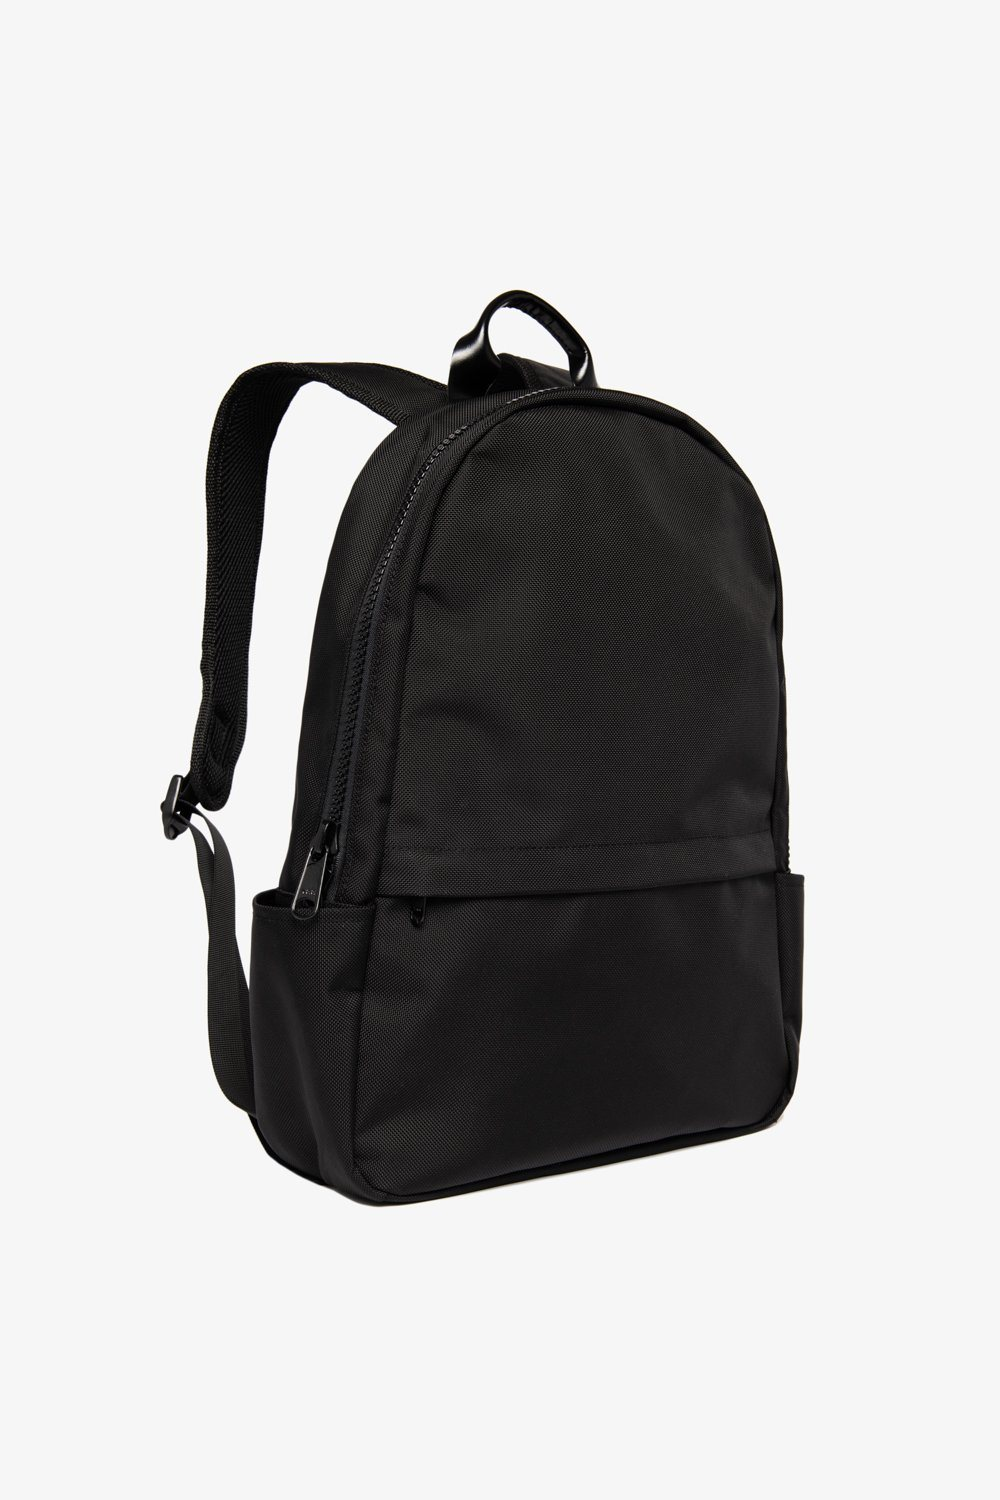 Pablo Backpack - Black Jack + Mulligan